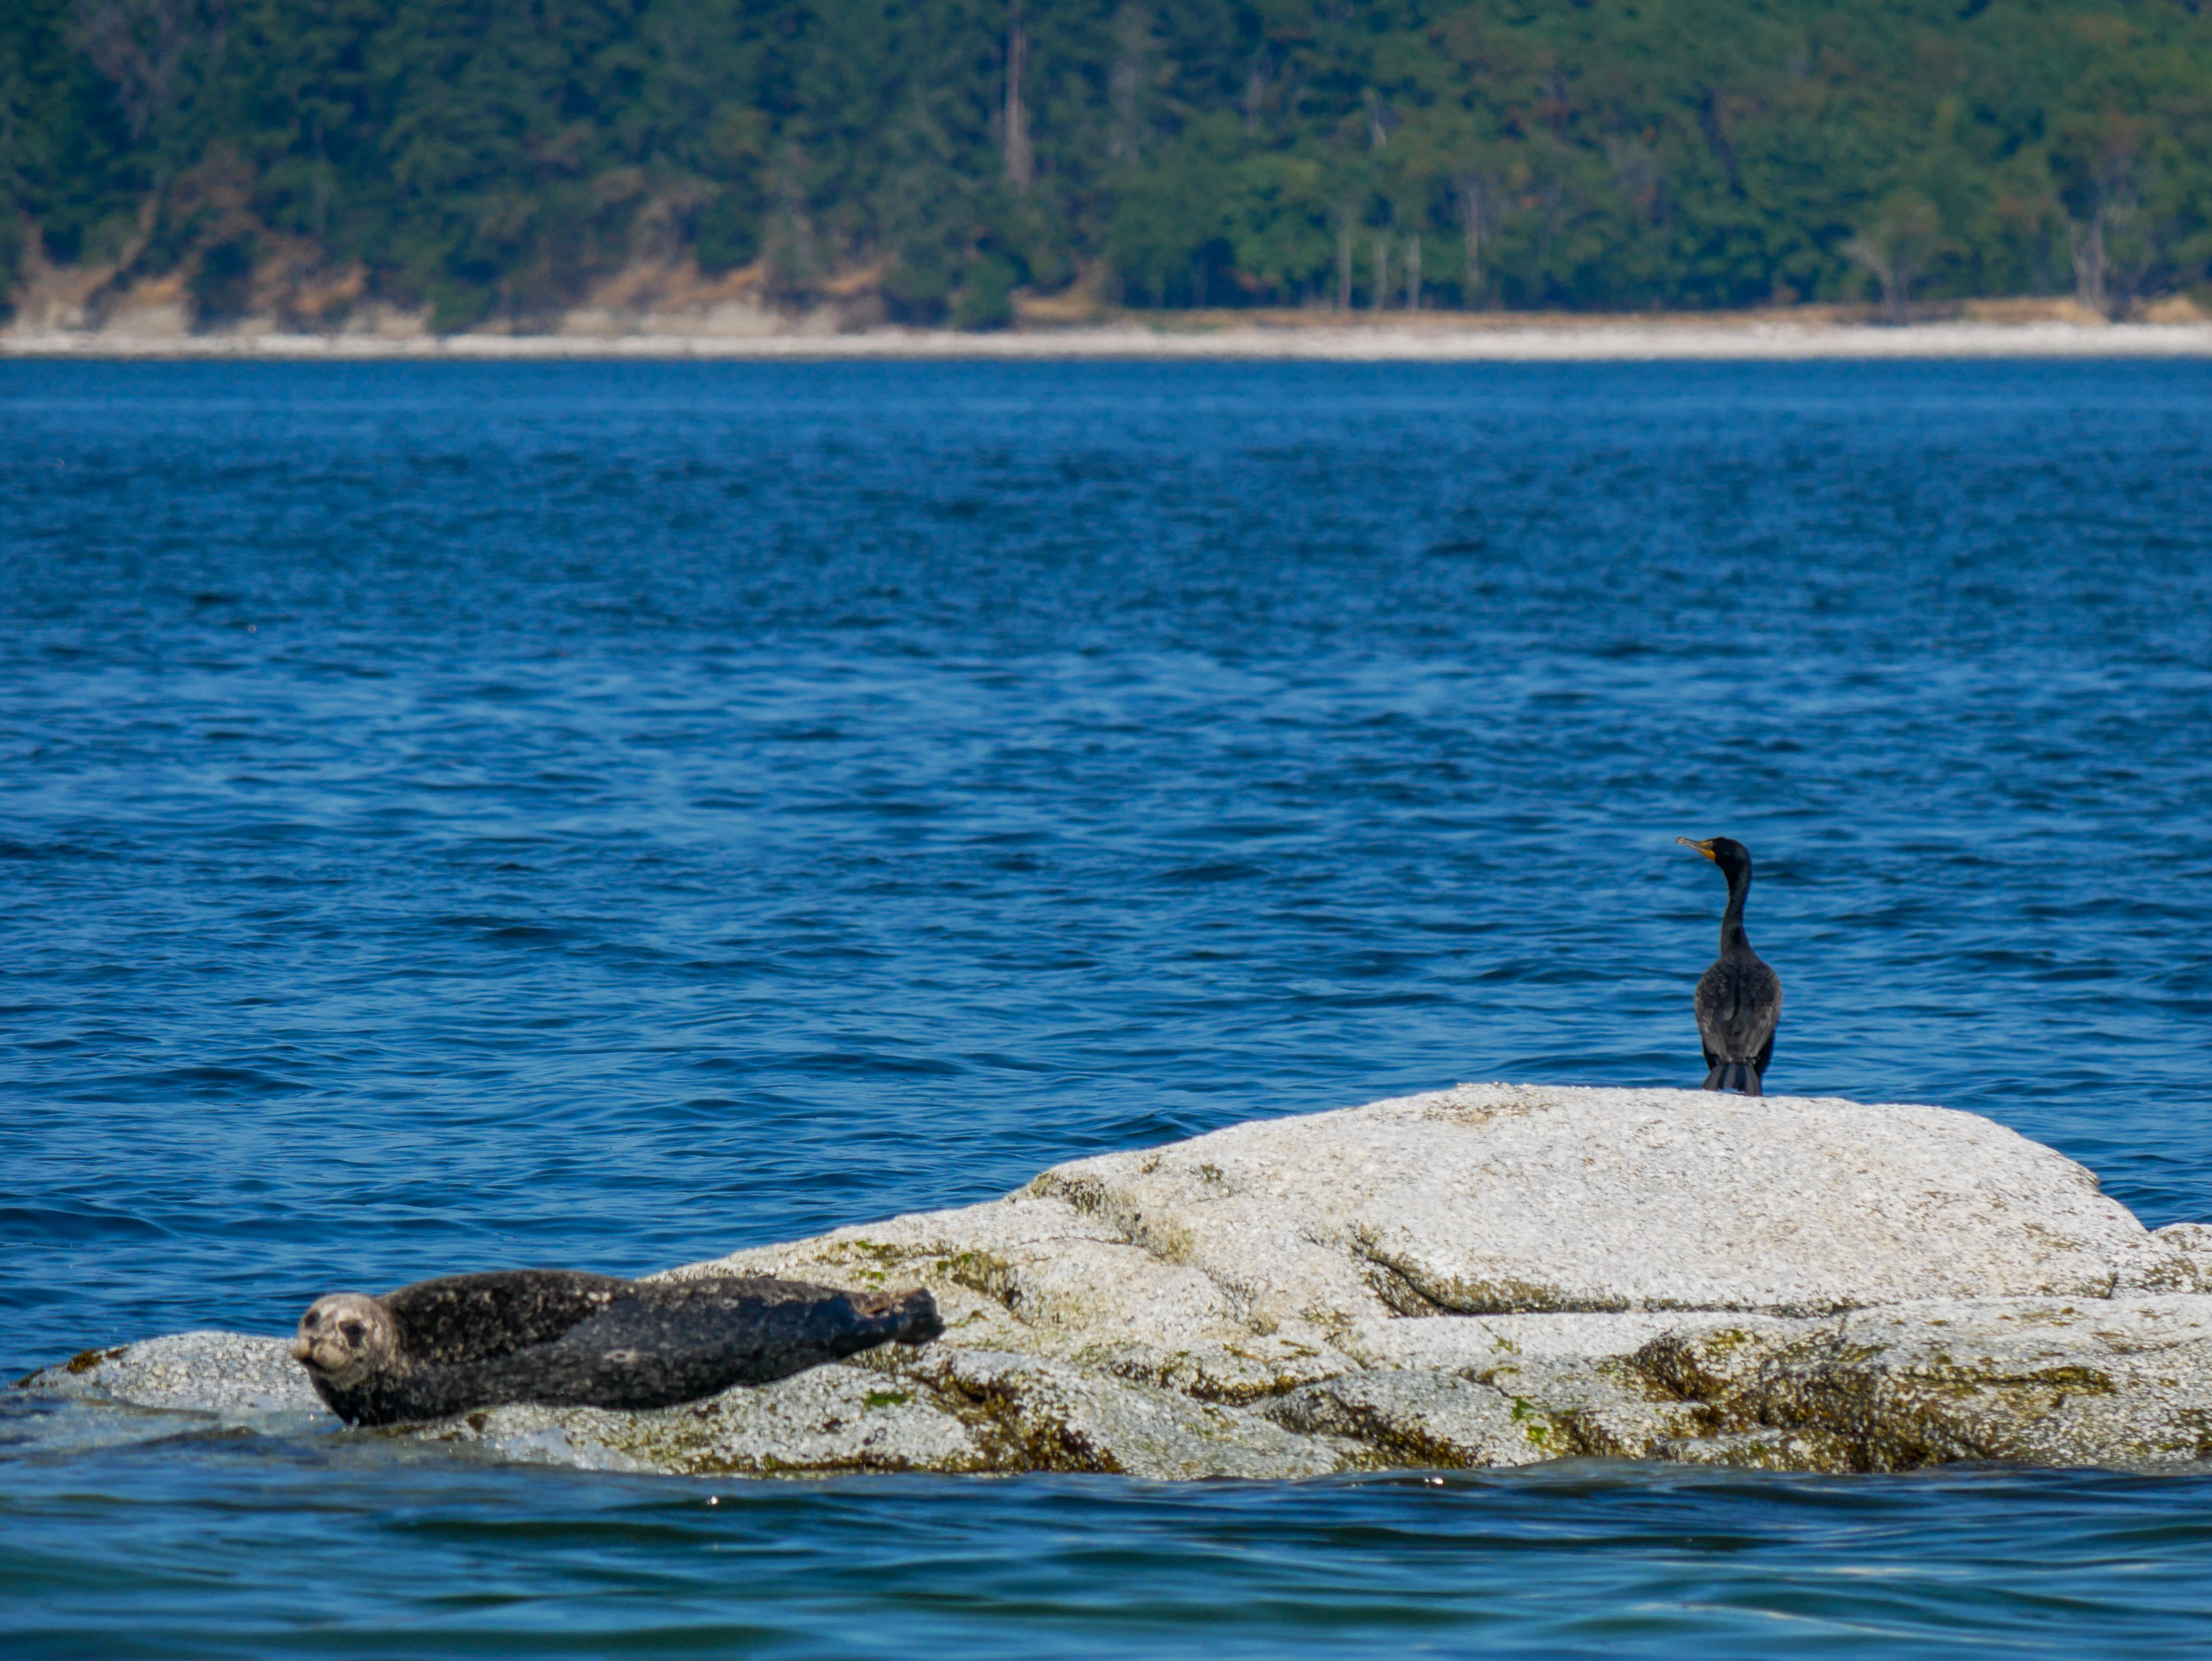 Harbour sealed (left) hauled on near Miami Island and a cormorant to the right. Photo by Alanna Vivani.